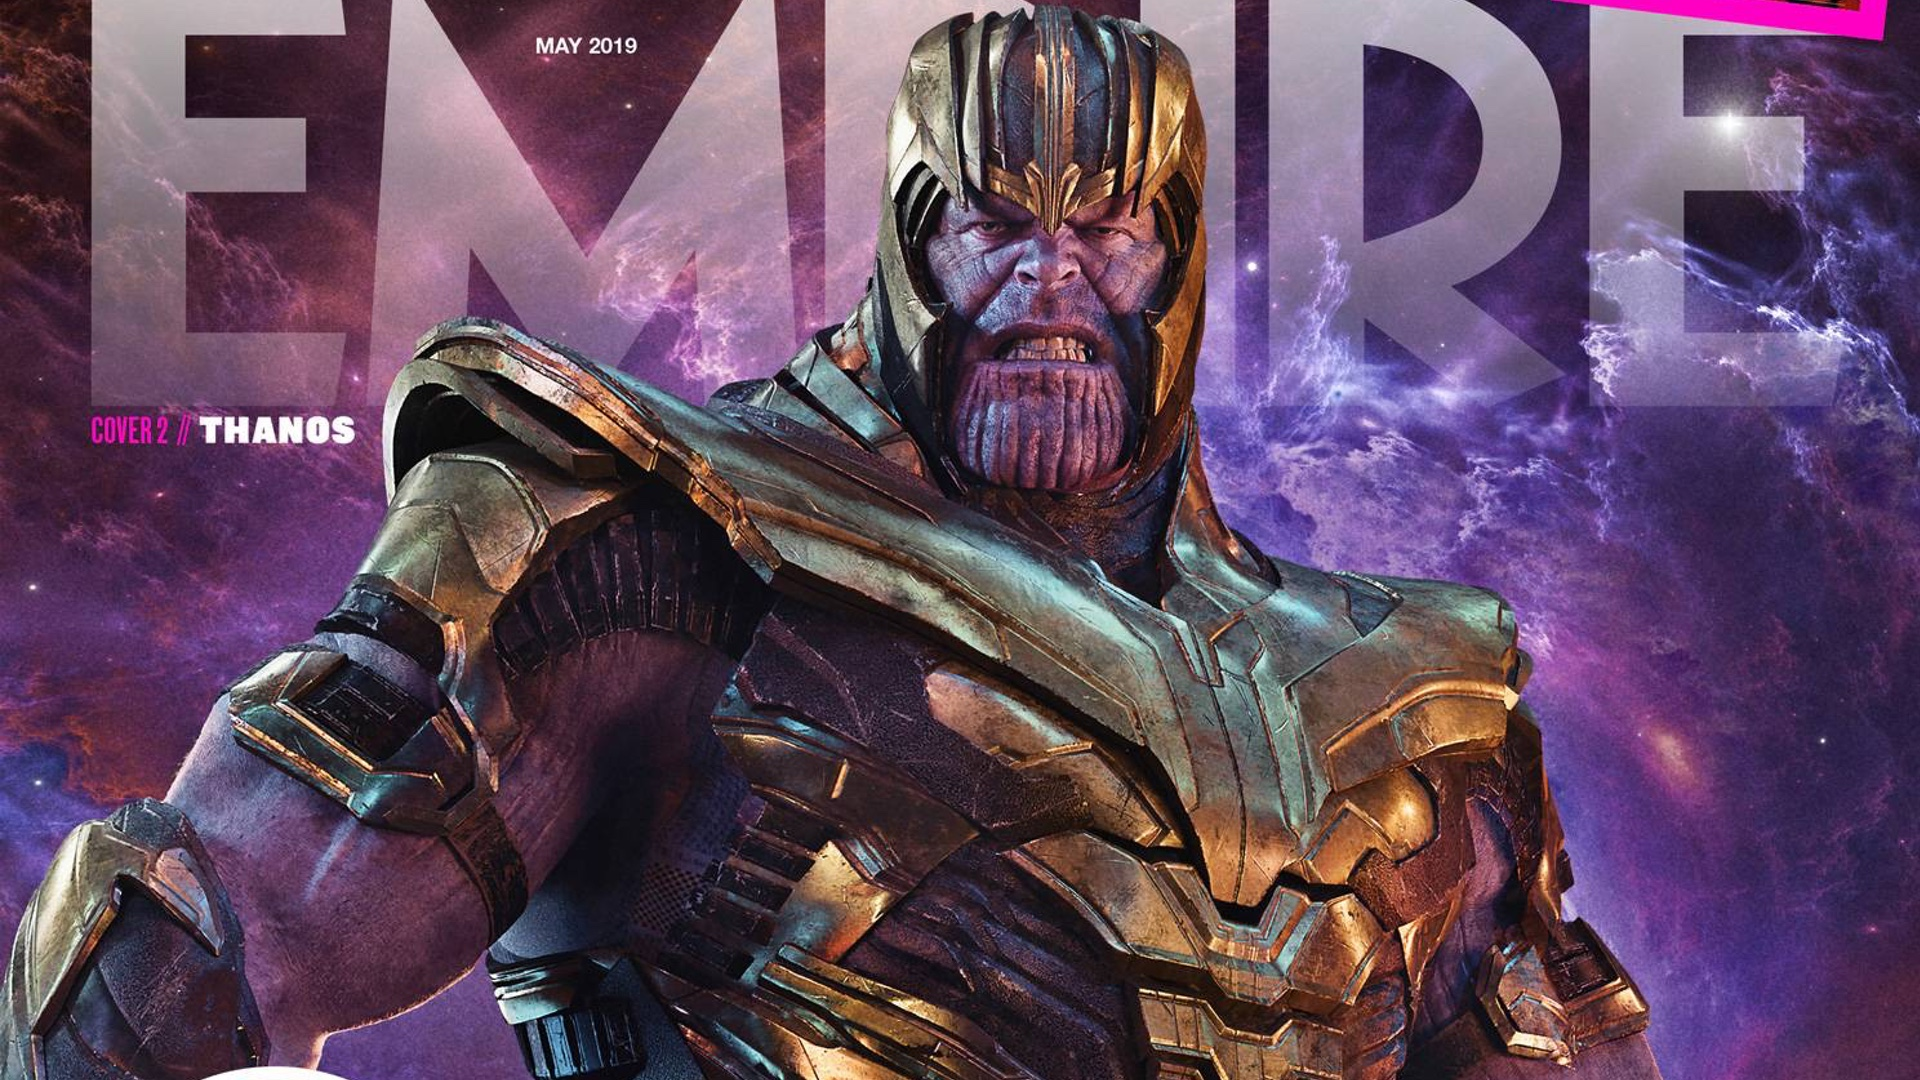 thanos-graces-the-cover-of-empire-in-full-armor-for-avengers-endgame-social.jpg